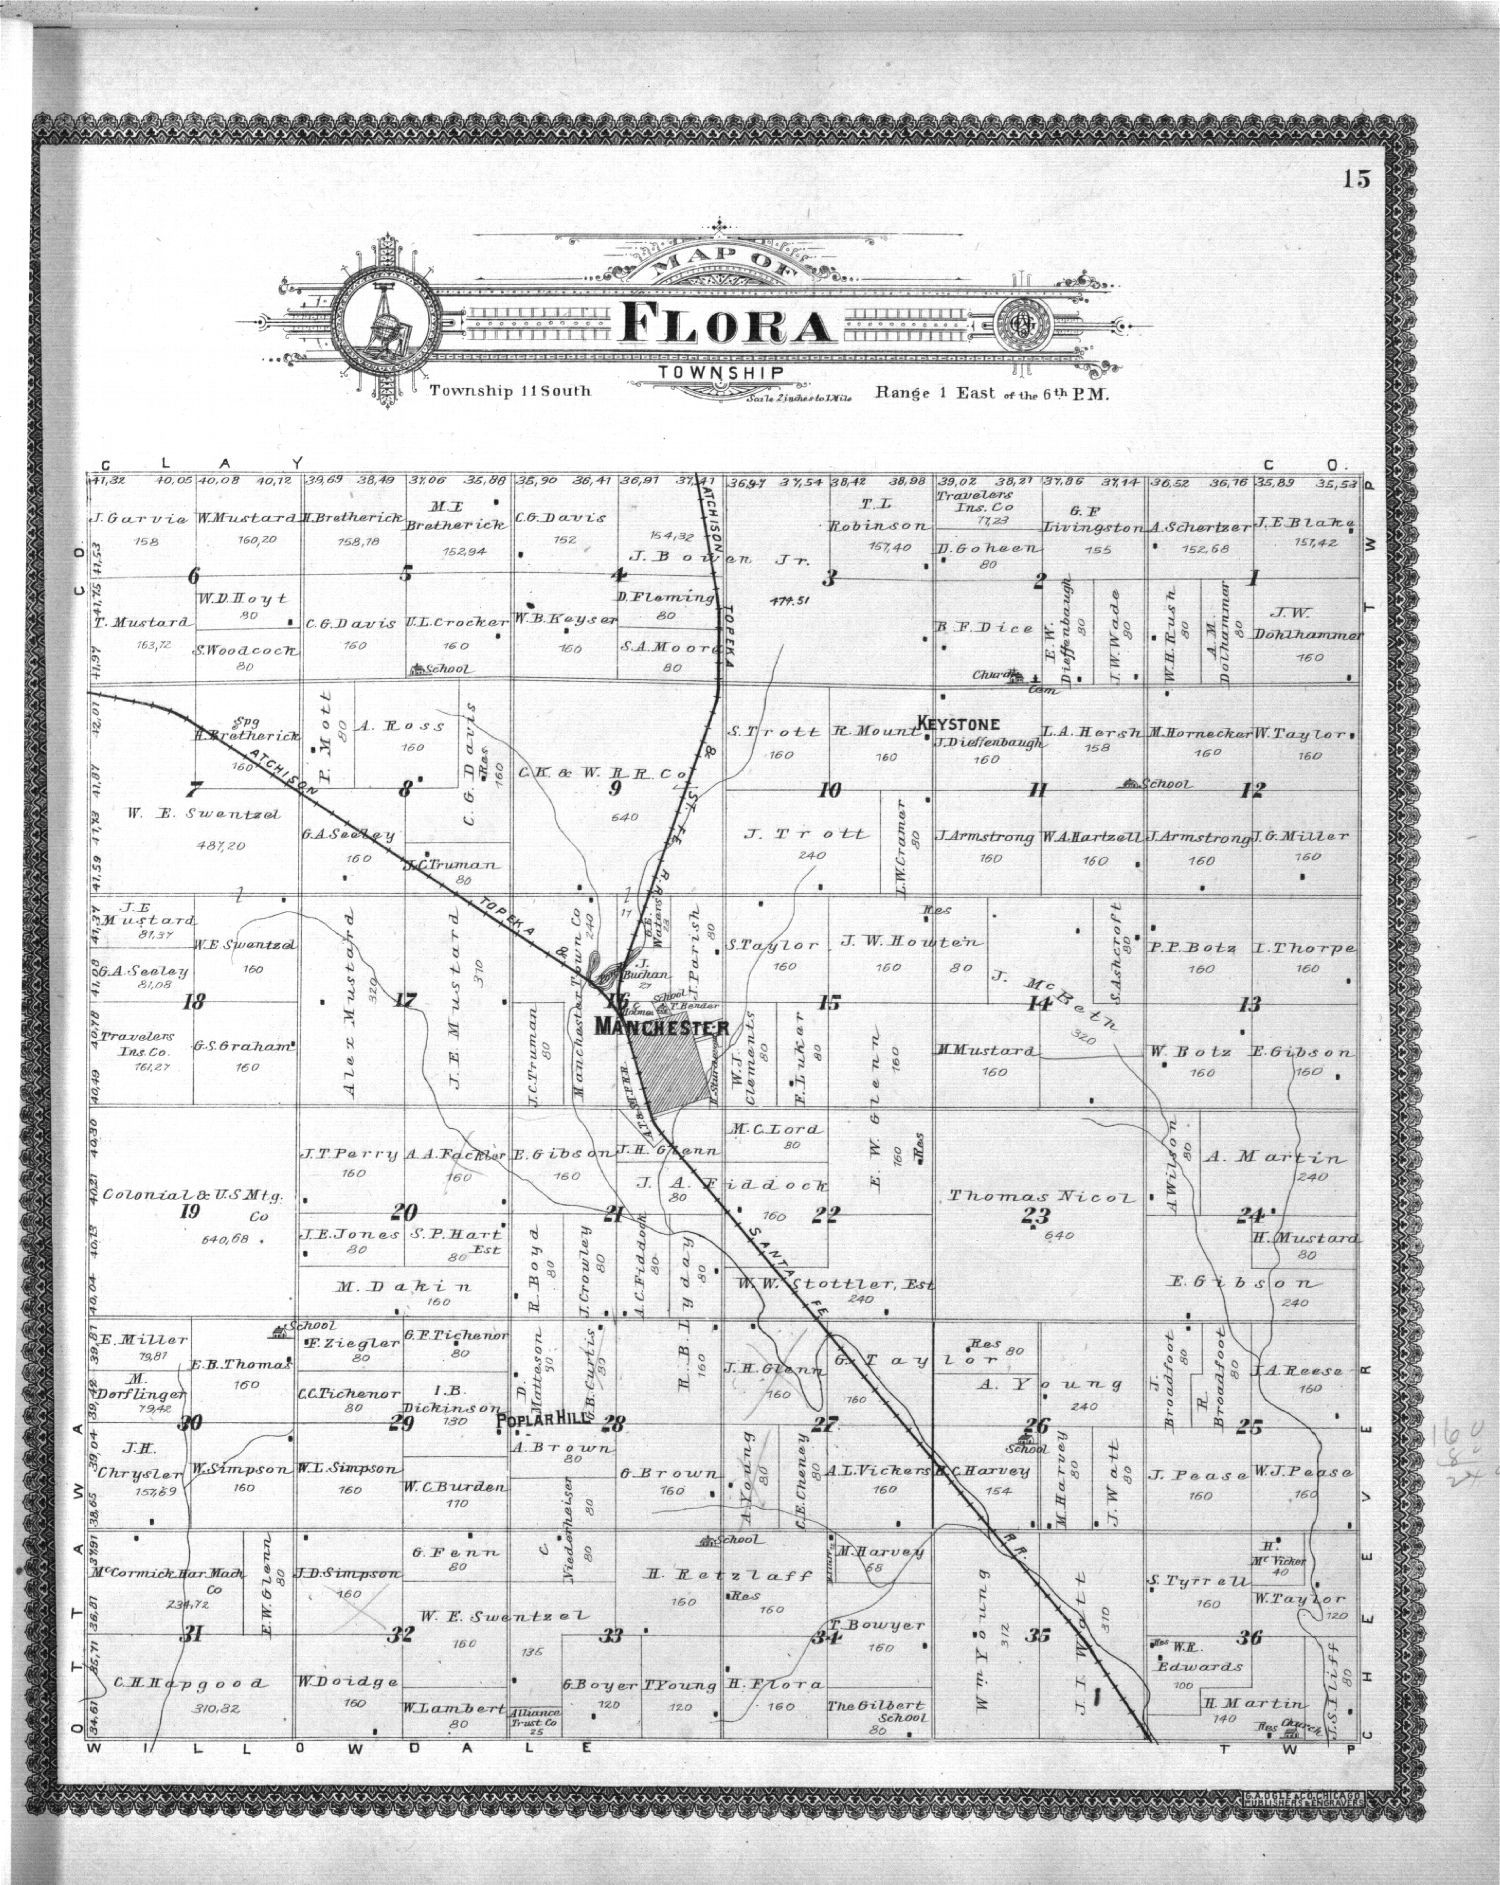 Standard atlas, Dickinson County, Kansas - 15